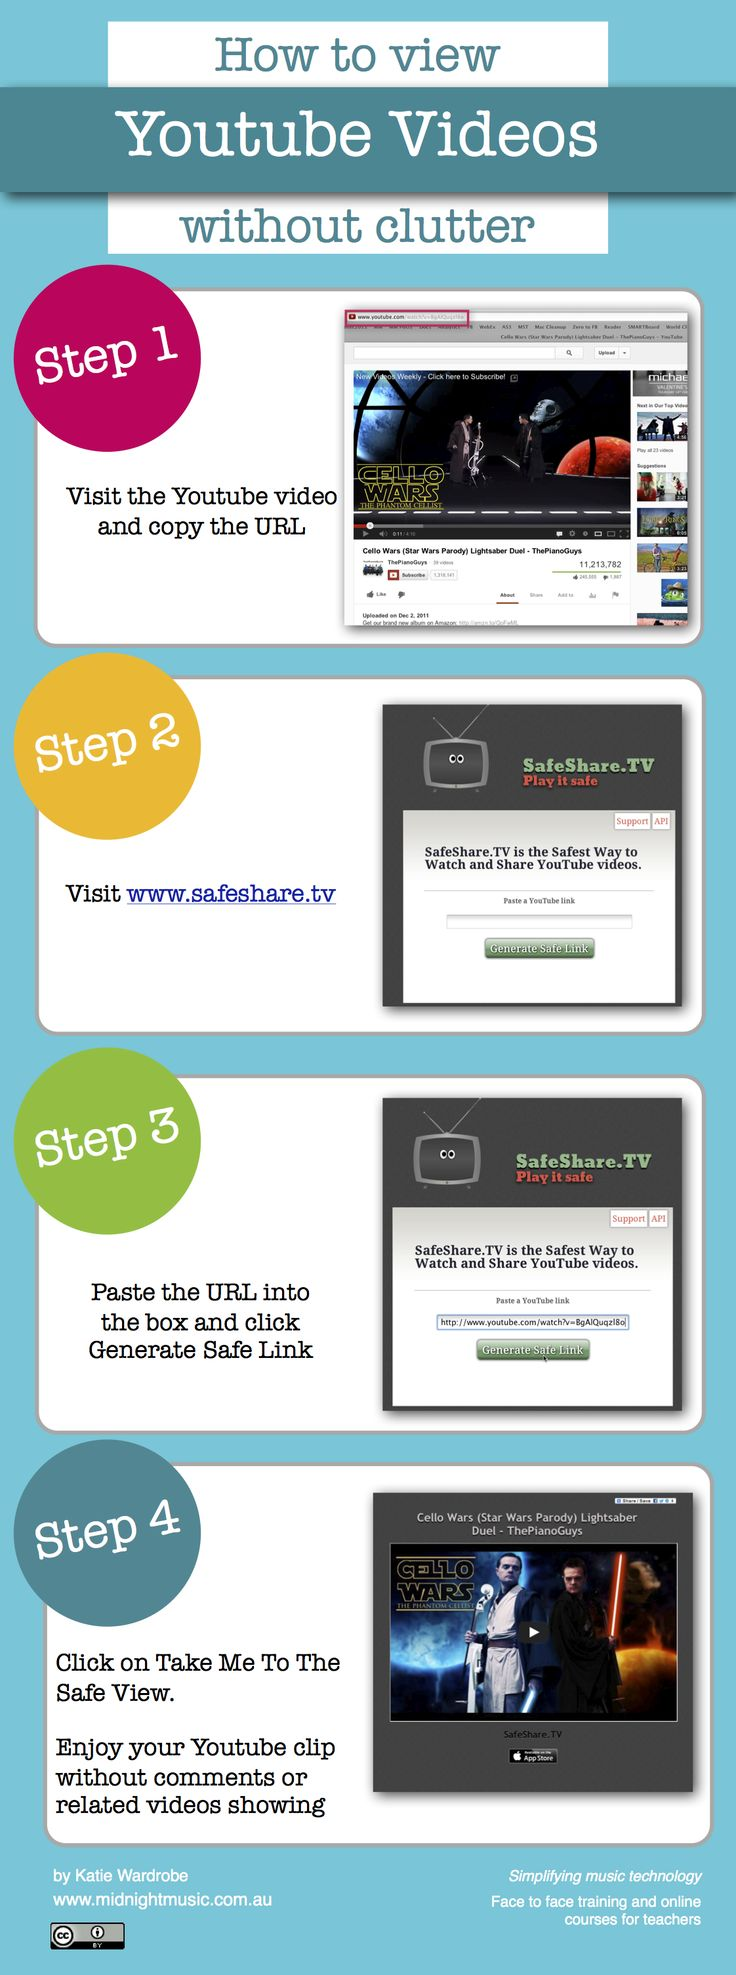 Viewing Youtube Clips Withoutments Or Related Videos The Sharesafe Website  Is A Simple